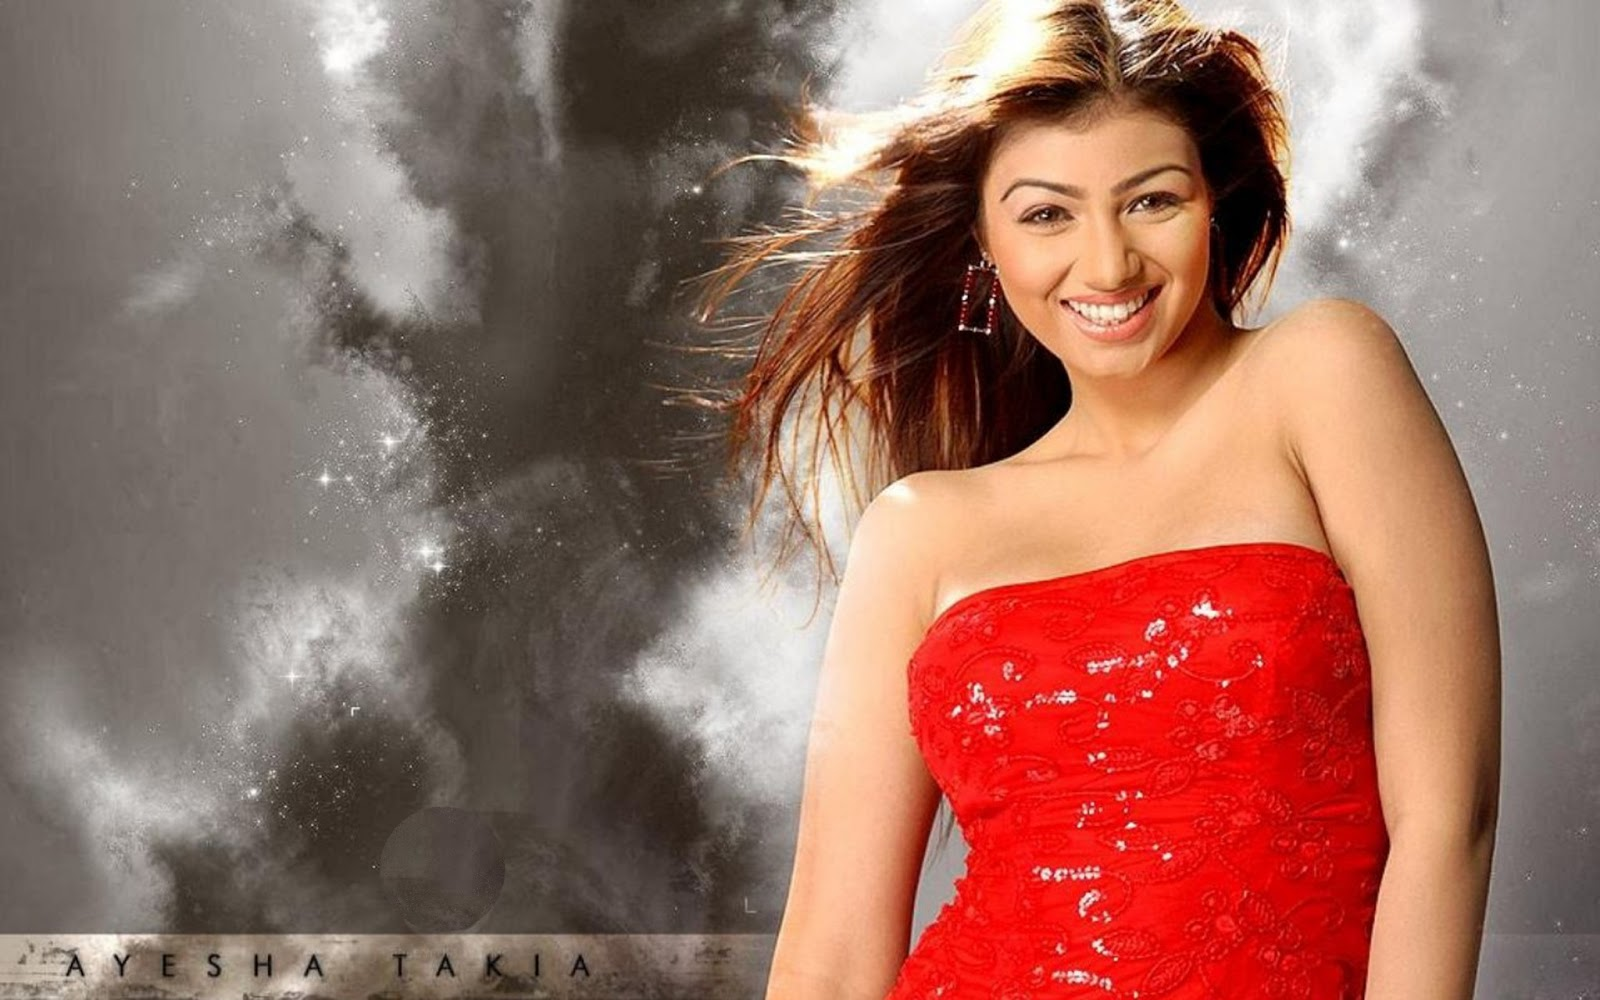 Hd Wallpapers Fine Ayesha Takia Hot Hd Photo Gallery Free -8782